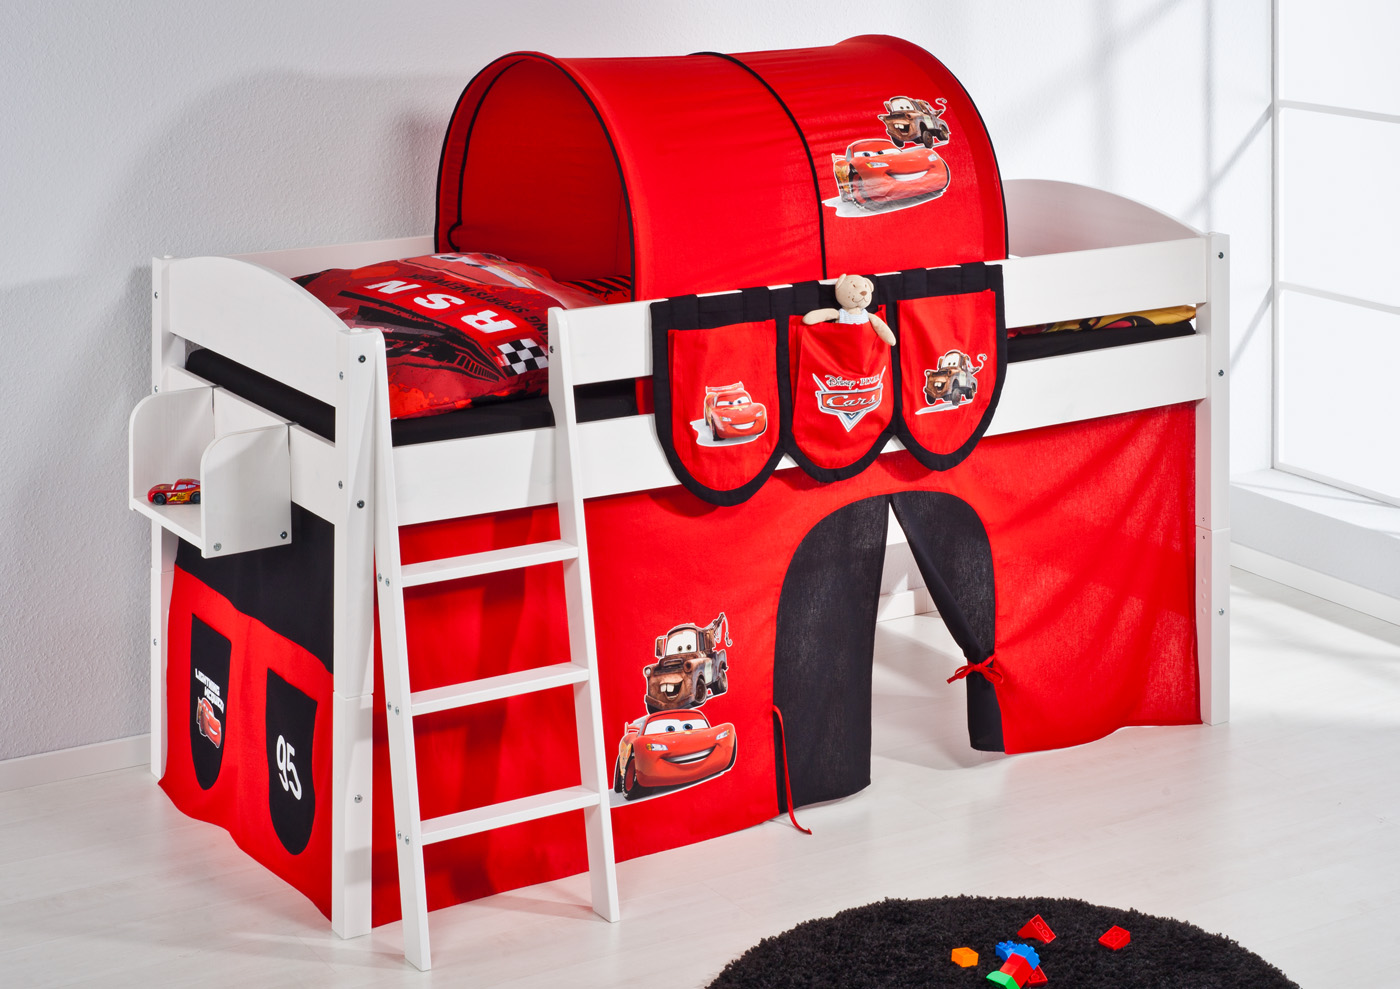 spielbett hochbett kinderbett kinder bett umbaubar zum. Black Bedroom Furniture Sets. Home Design Ideas